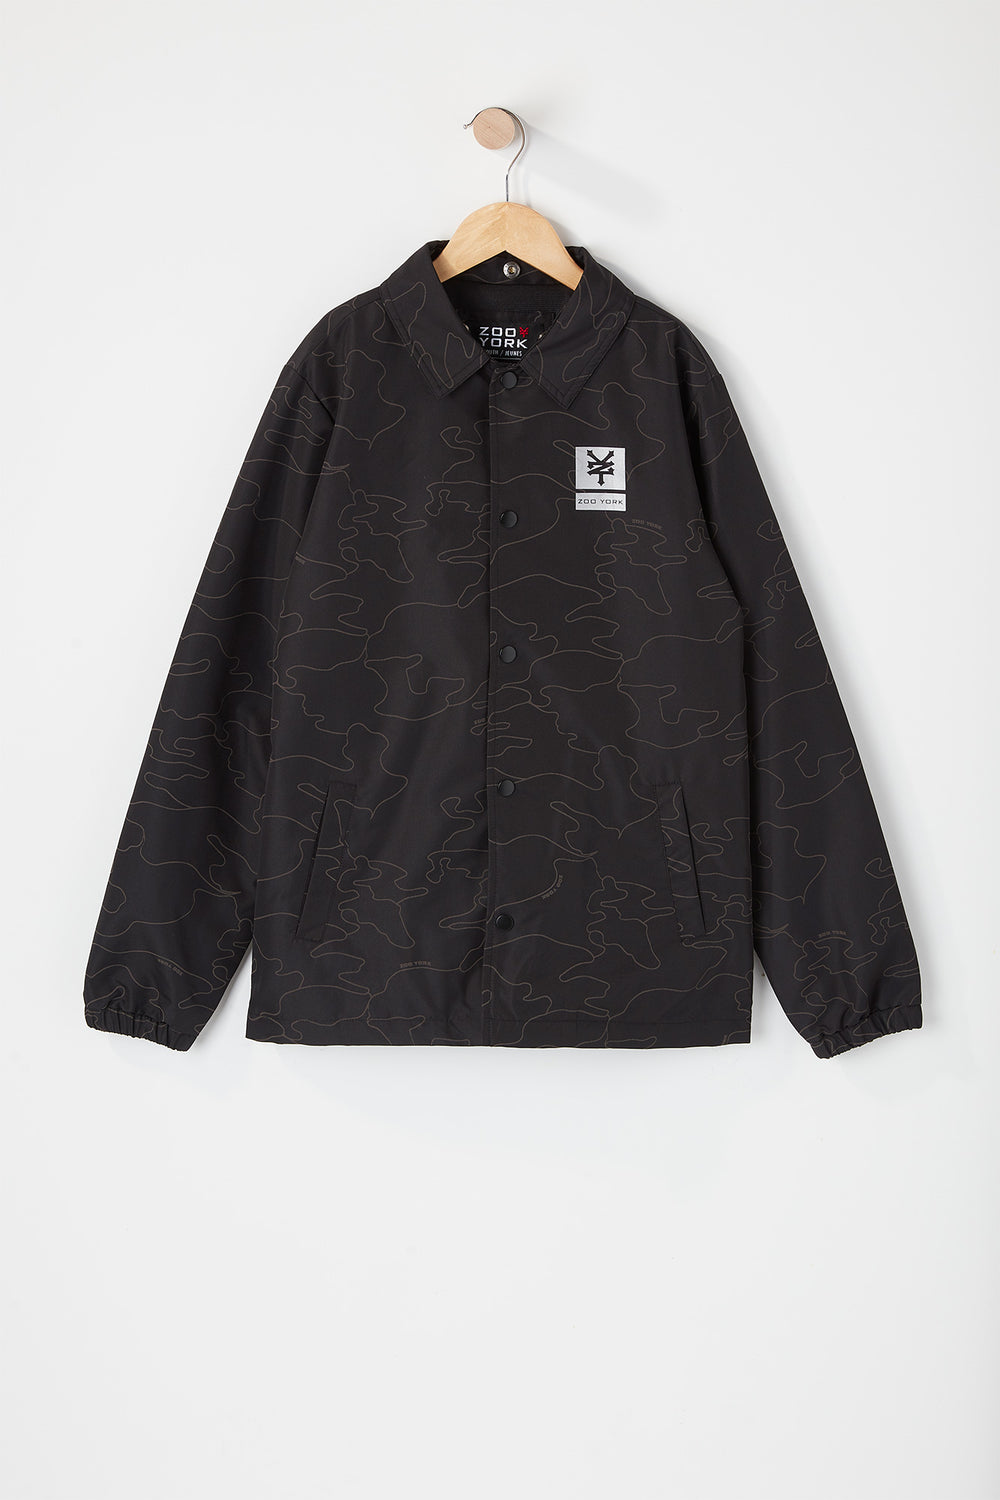 Zoo York Youth Hooded Reflective Camo Jacket Buffalo Check